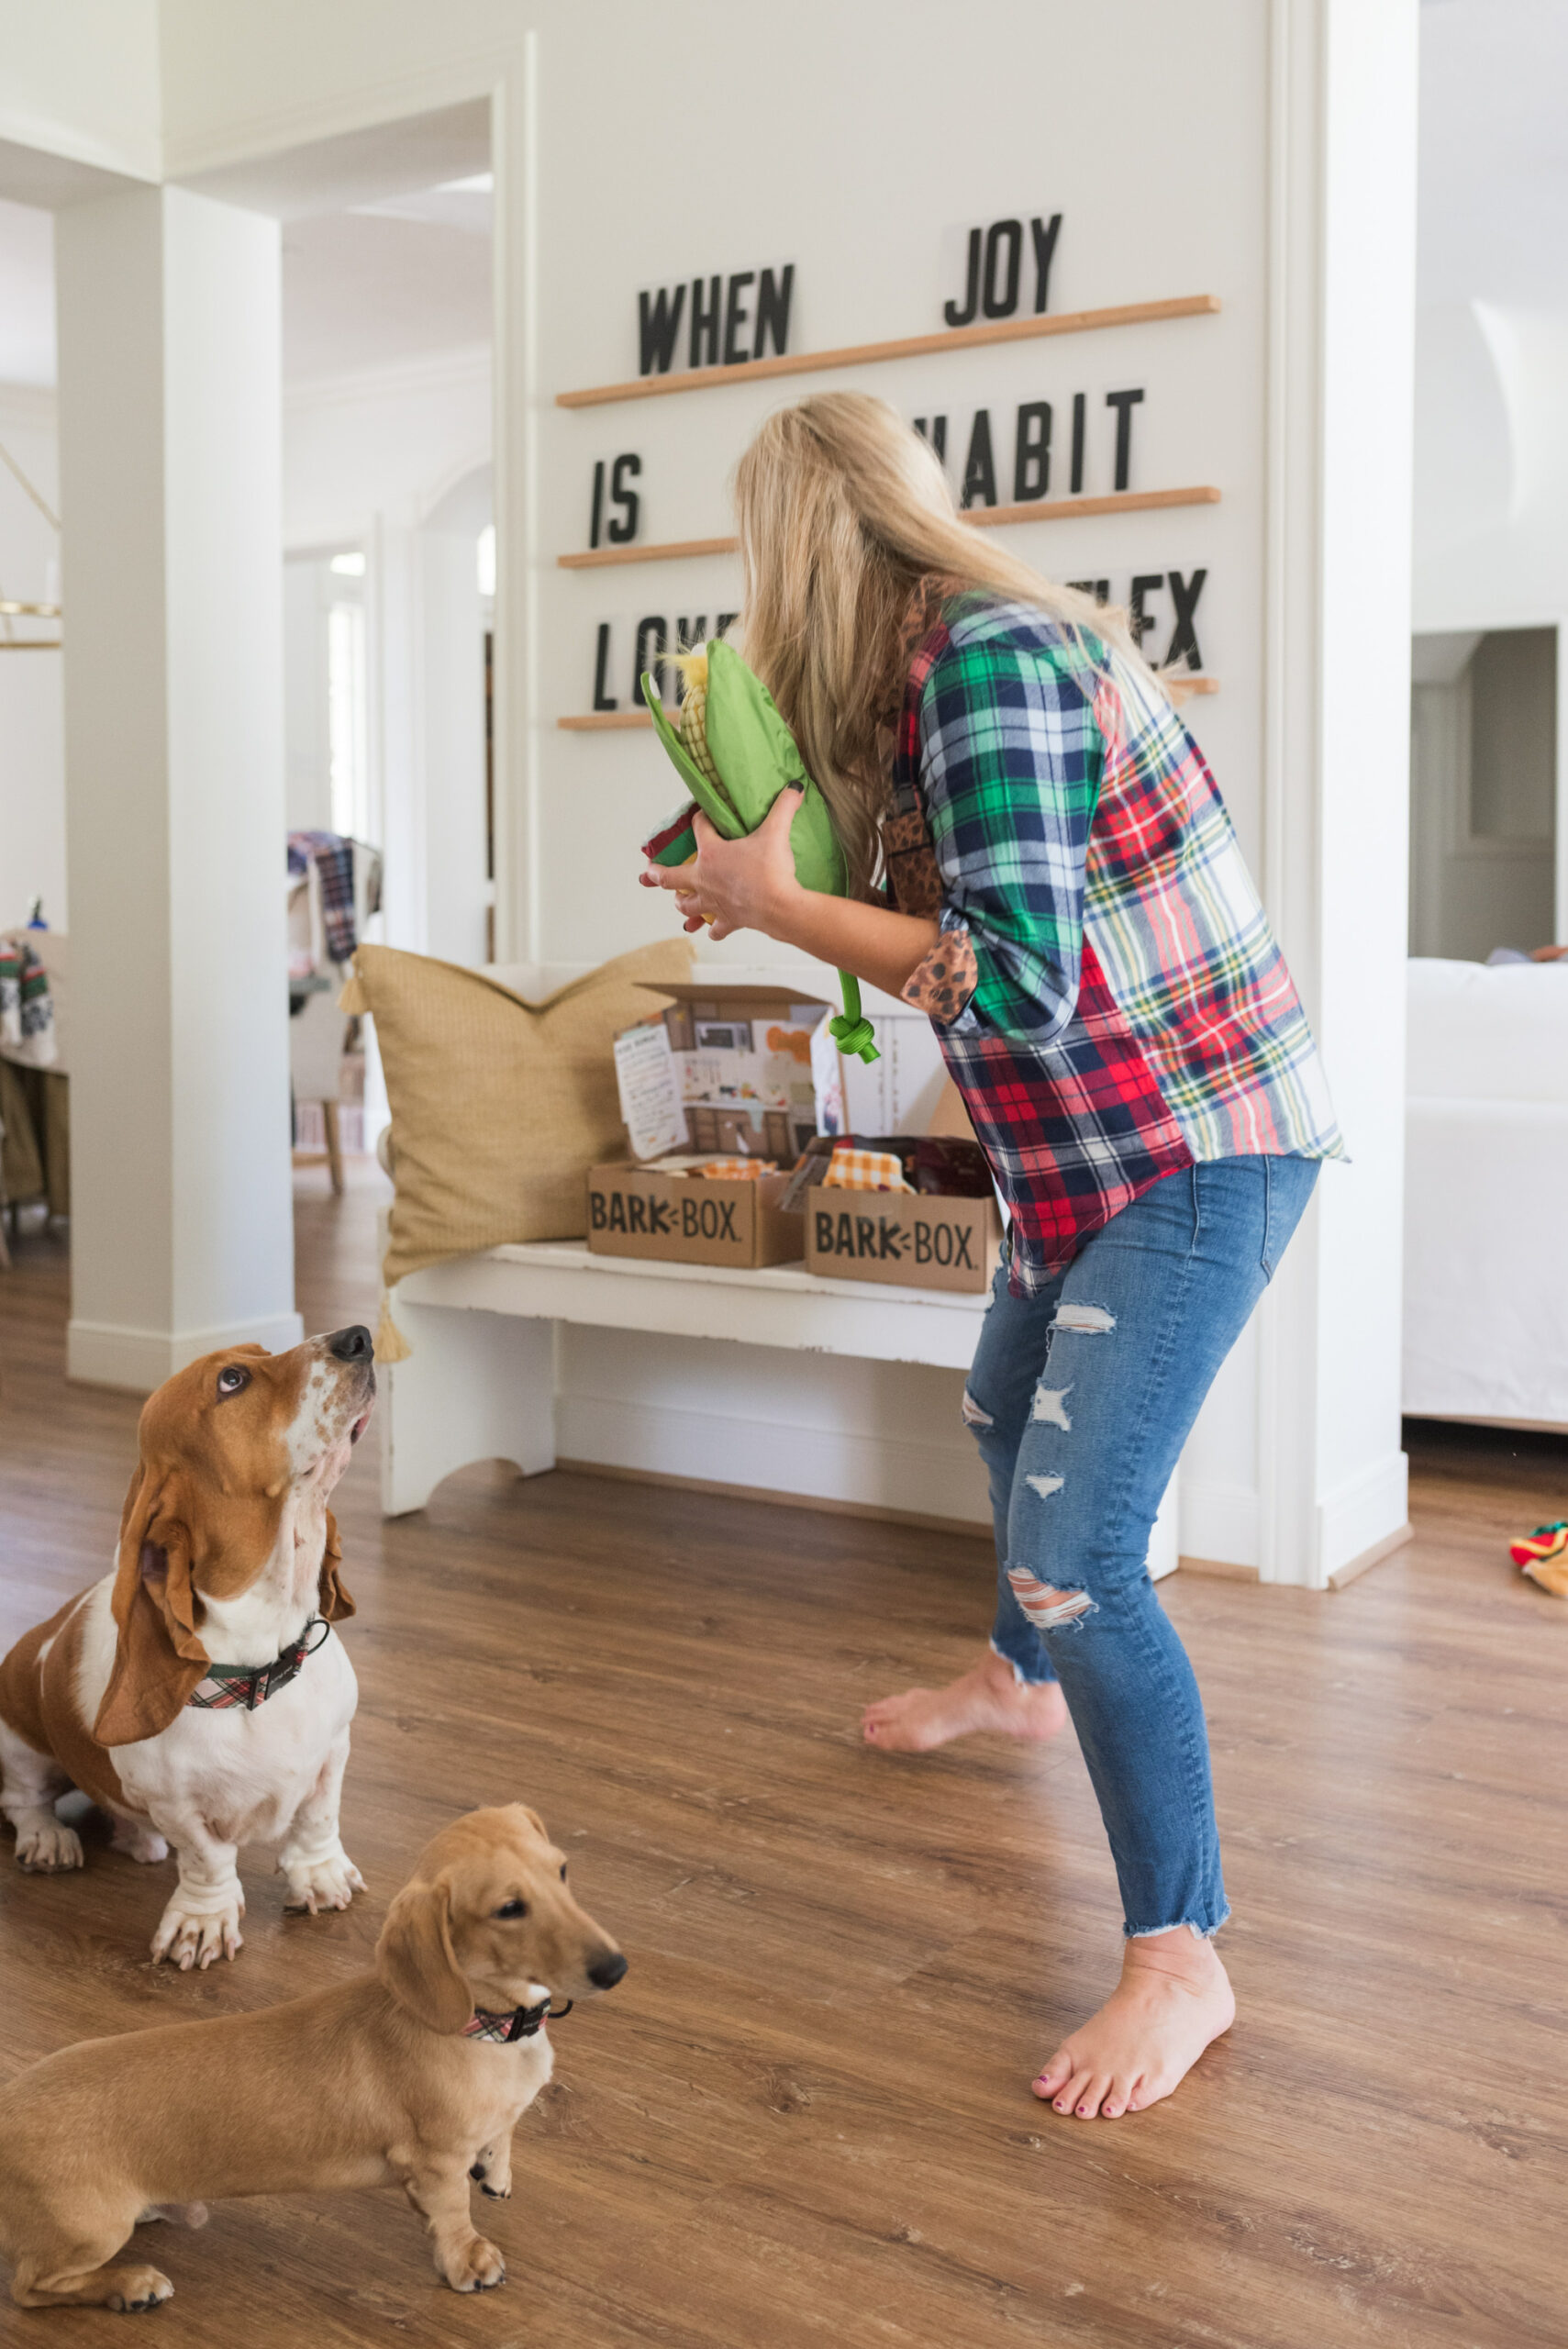 Barkbox Toys by popular Houston lifestyle blog, Fancy Ashley: image of a woman standing next to her two dogs and holding some BarkBox toys in her hands.